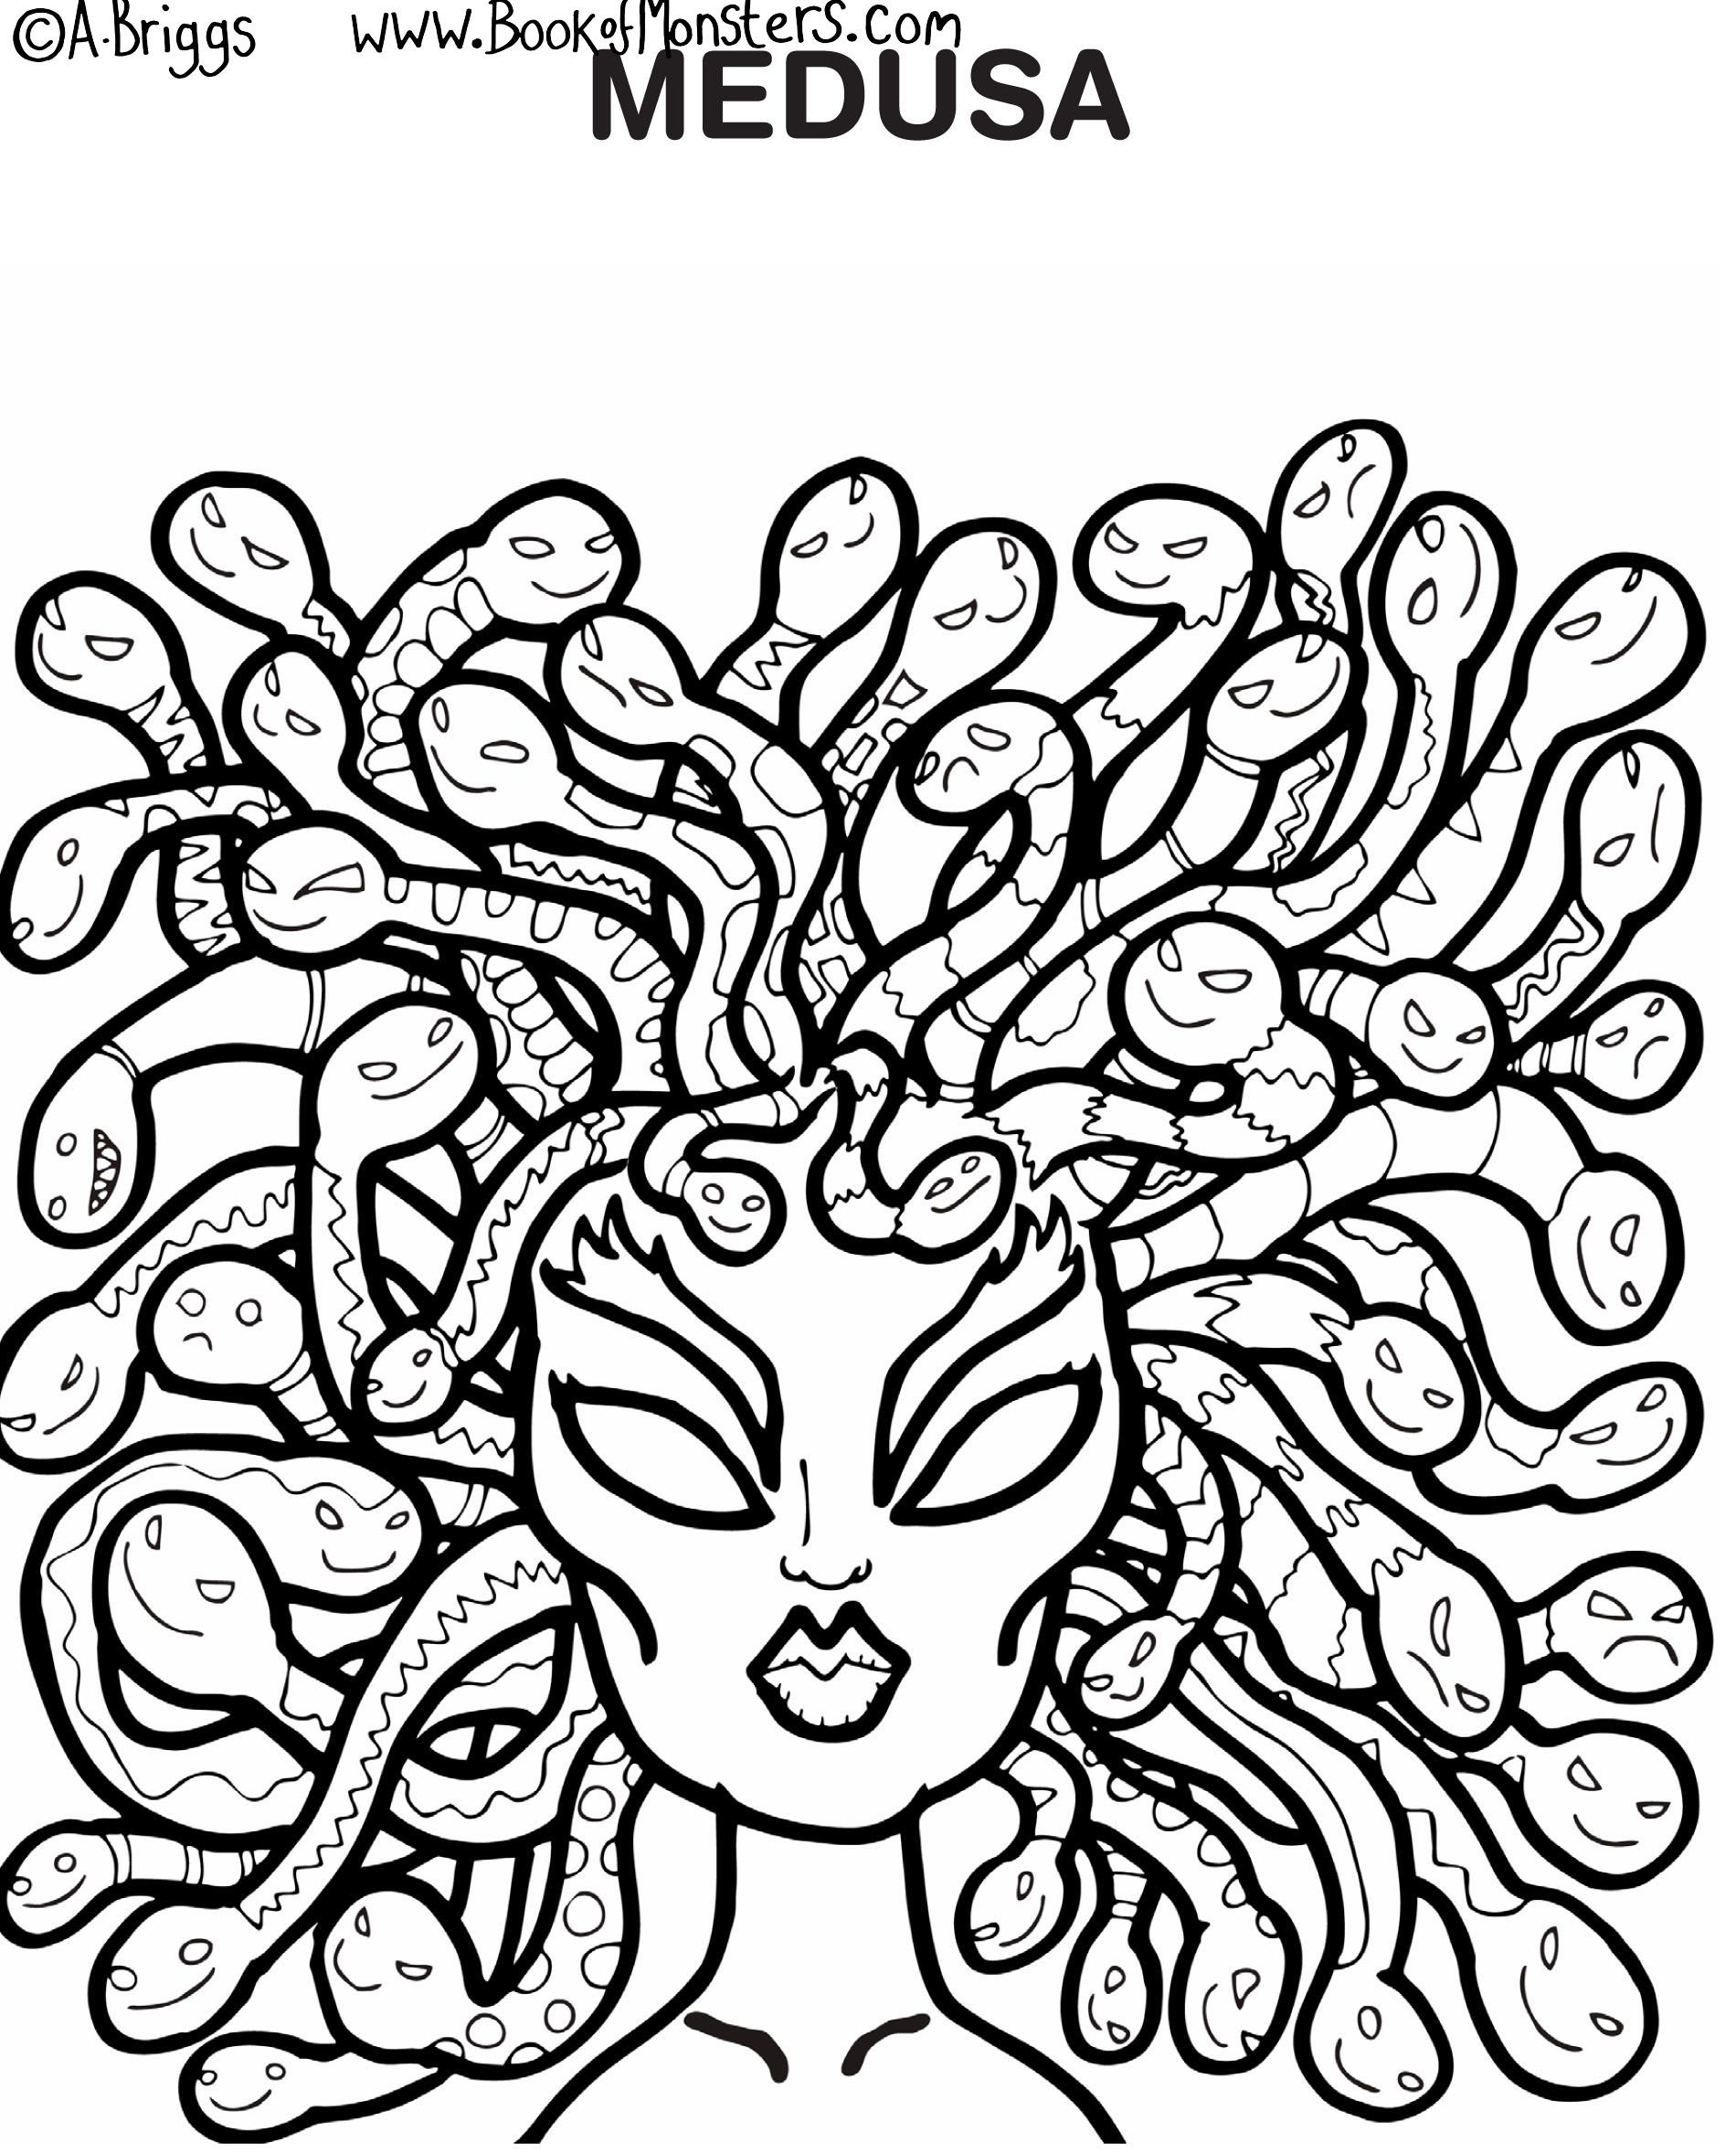 Book Of Monsters Coloring Page For Kids Medusa